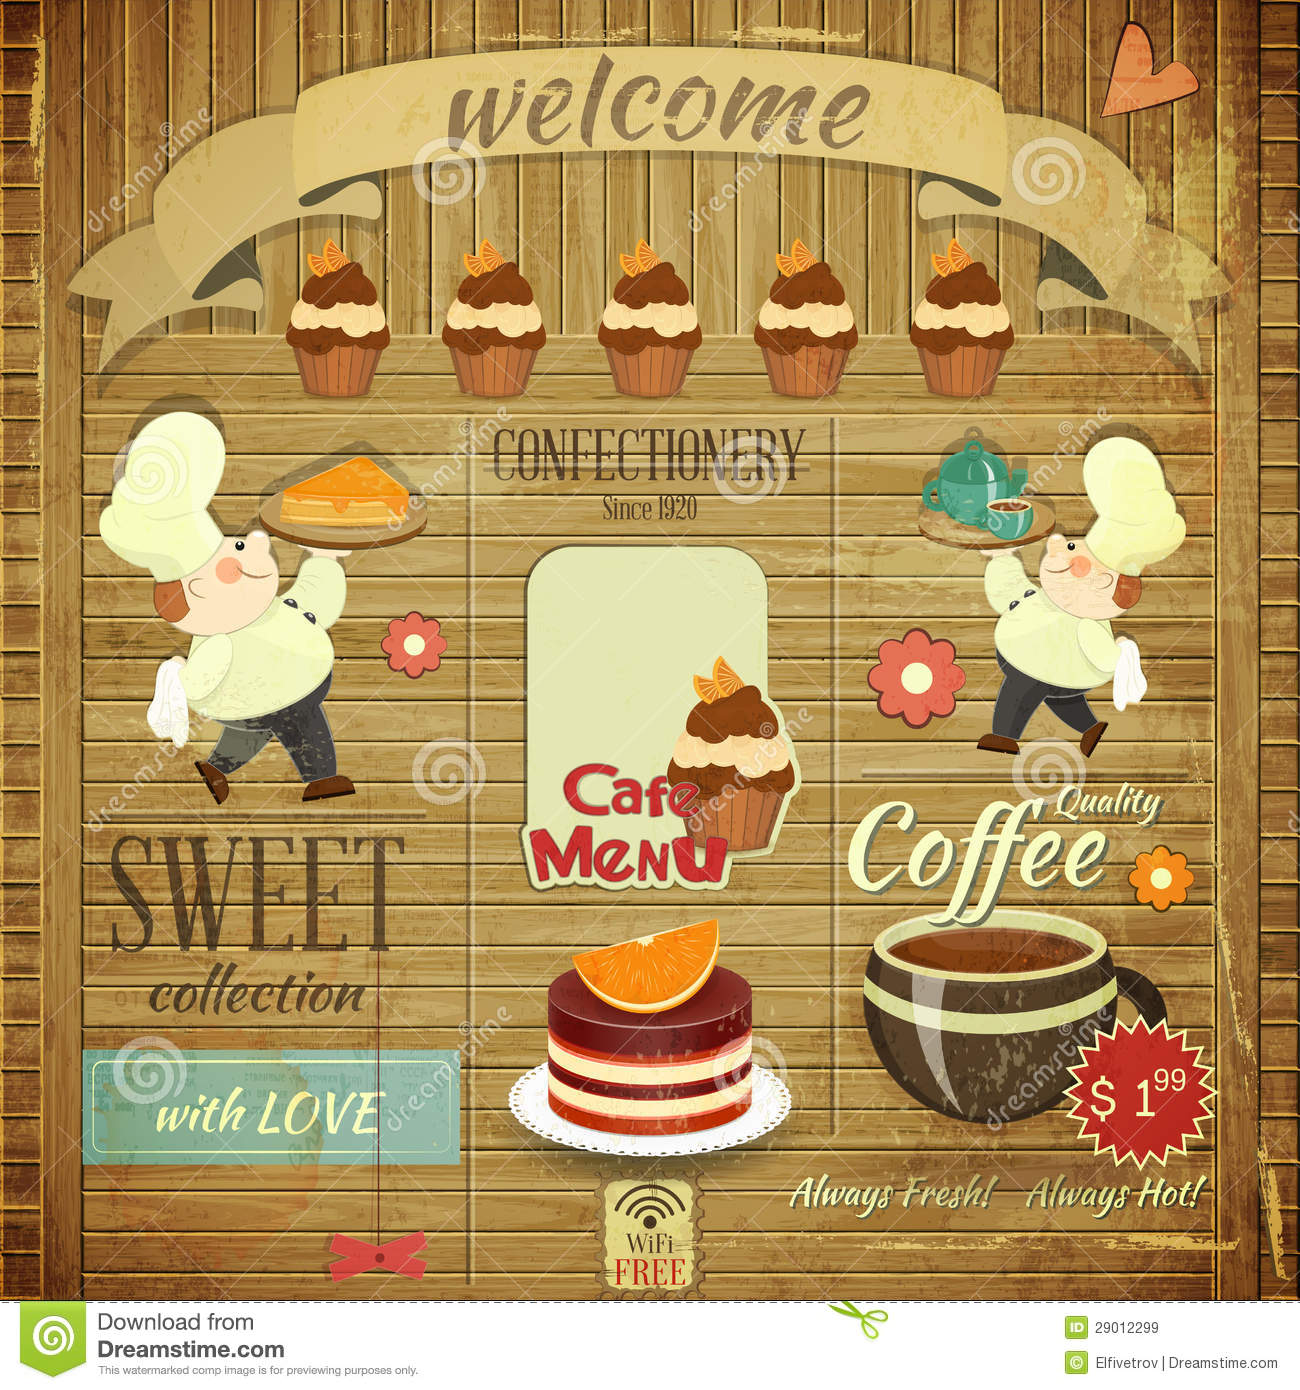 cafe confectionery menu retro design royalty free stock images